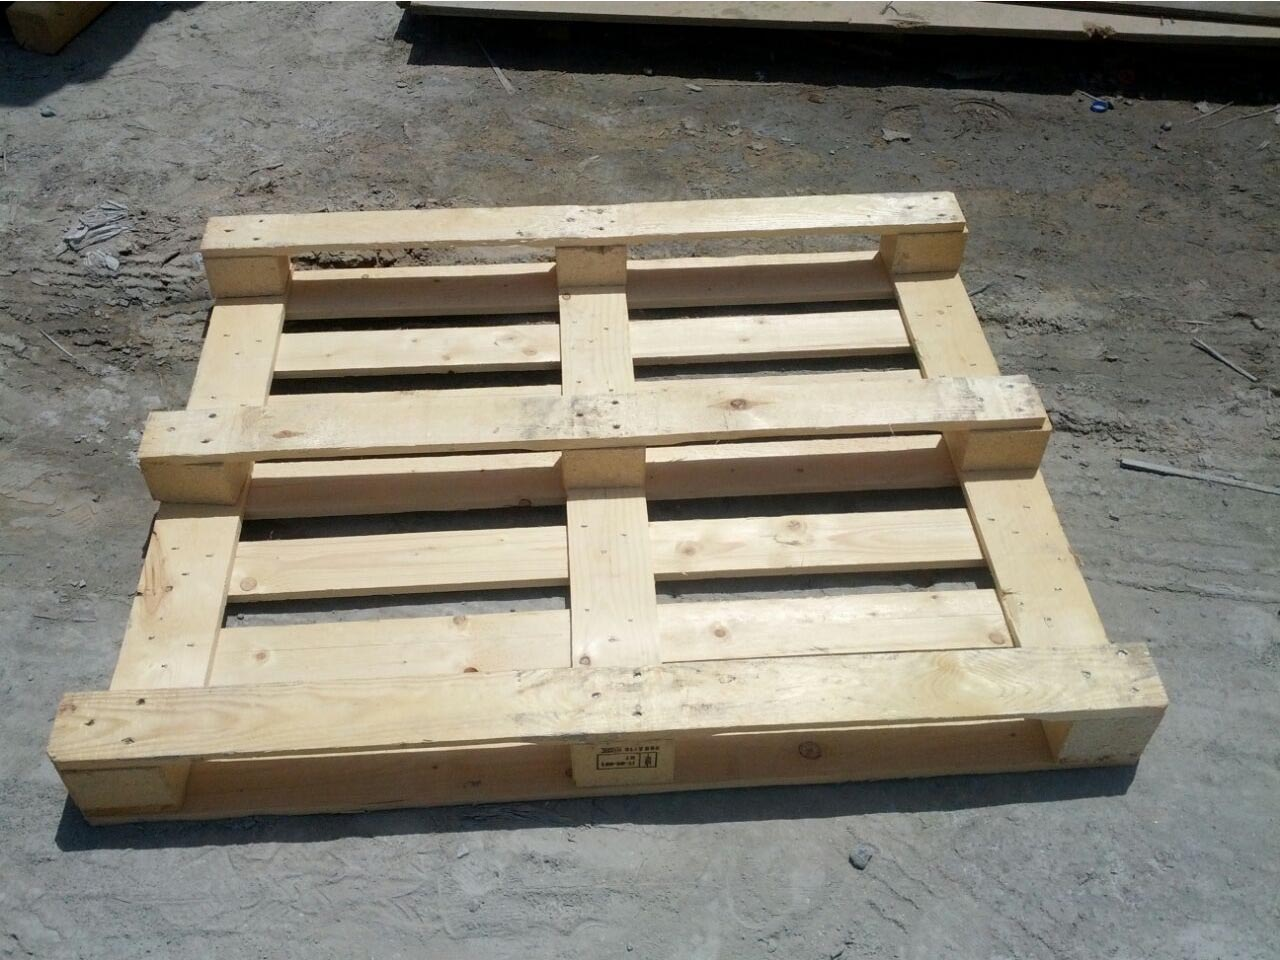 another view of a wooden pallet